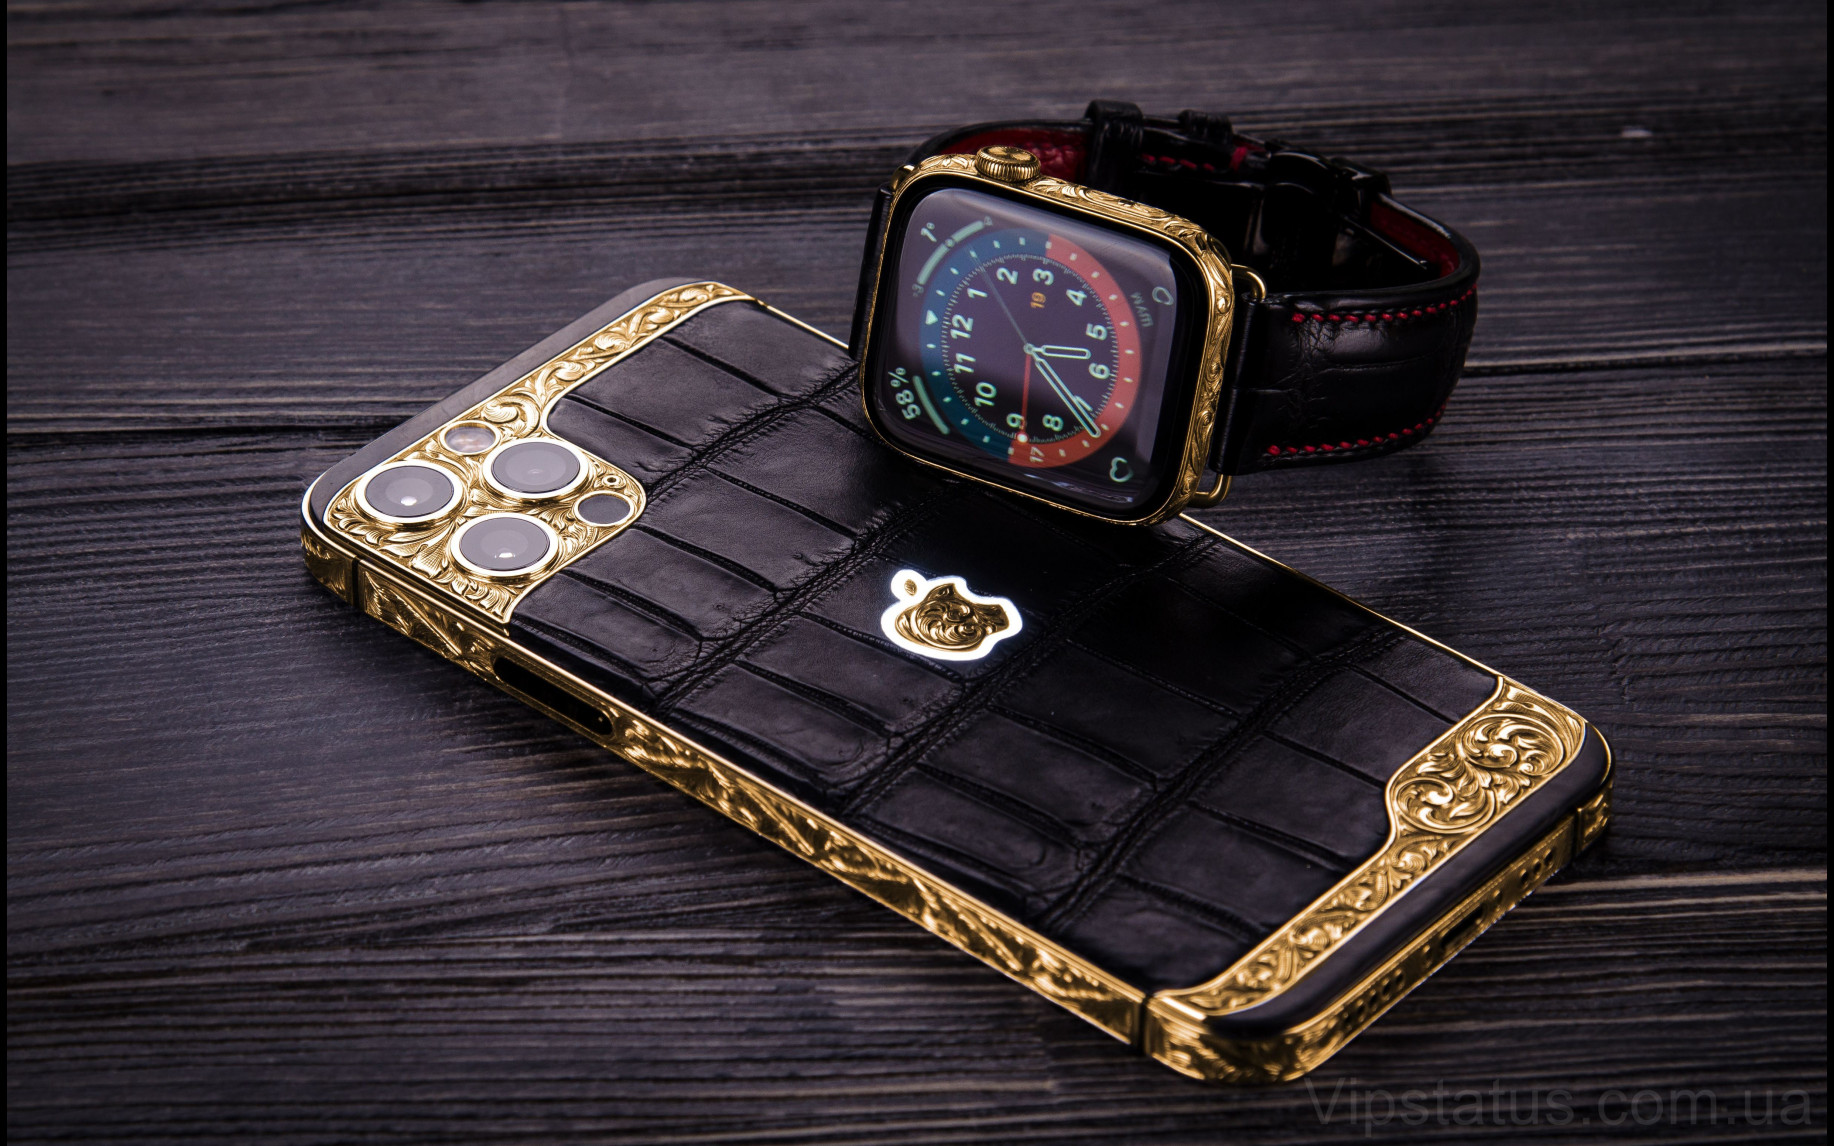 Elite Gold Lord IPHONE 12 PRO MAX 512 GB Gold Lord IPHONE 12 PRO MAX 512 GB image 4